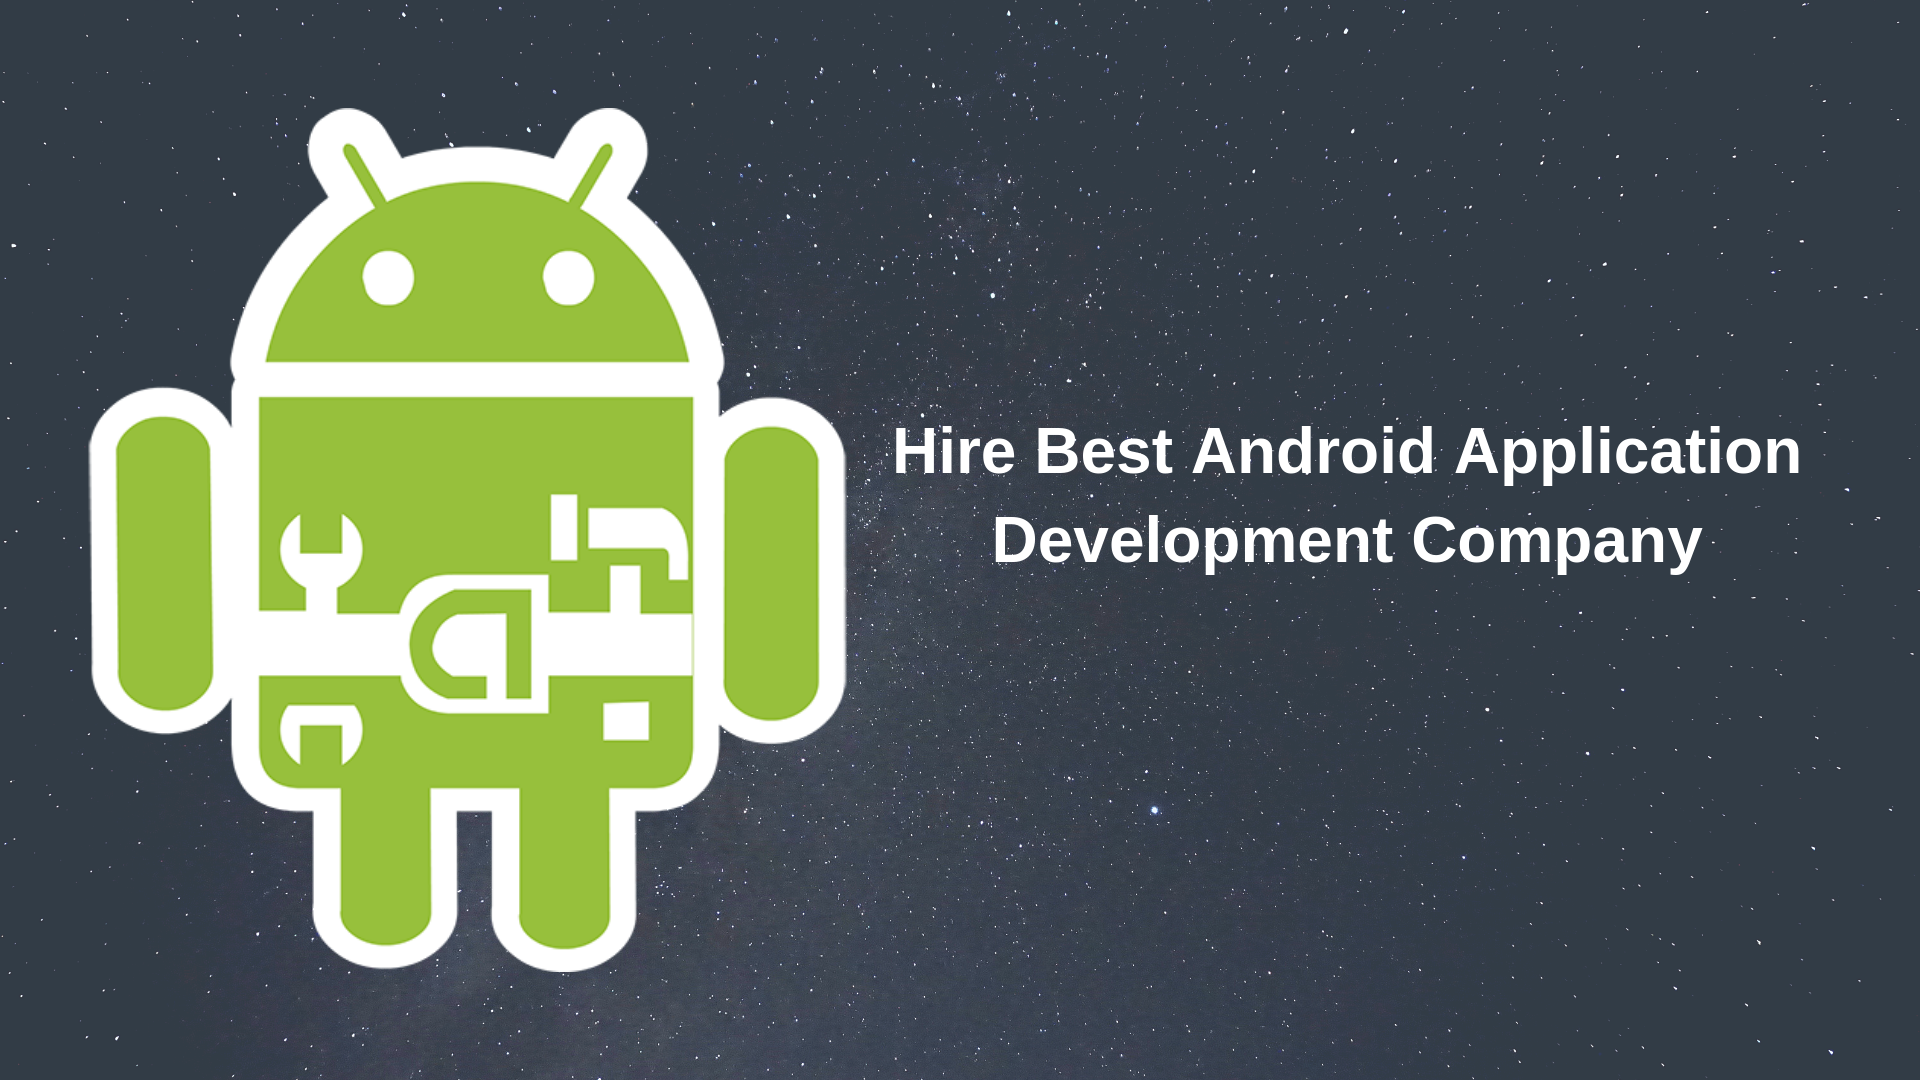 Which are the best Android app development companies in New